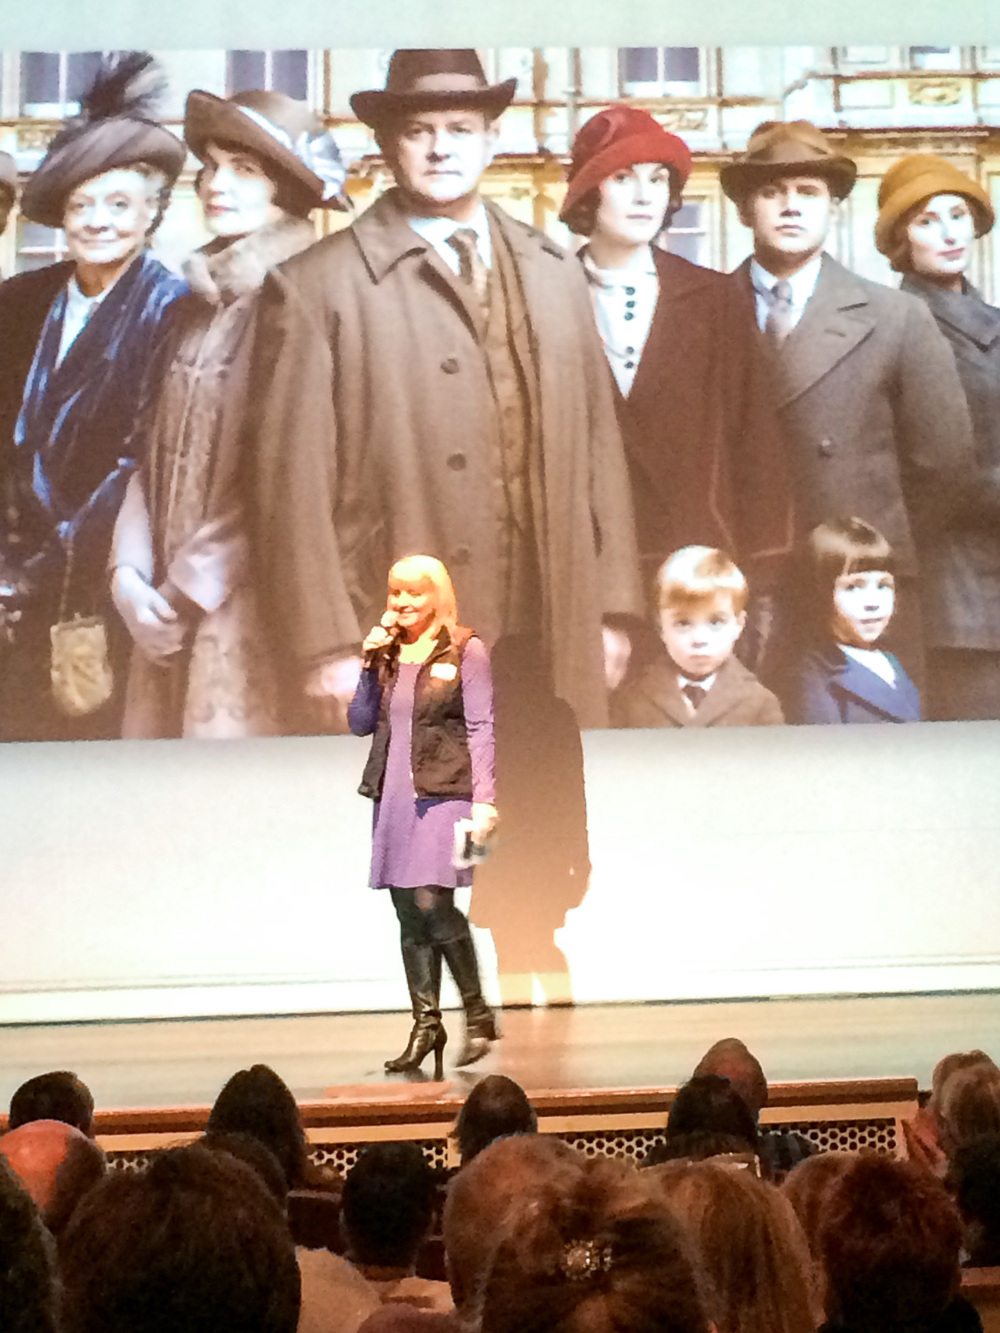 Introducing Jessica Fellows and welcoming her on stage at Sunset Center in Carmel, CA.